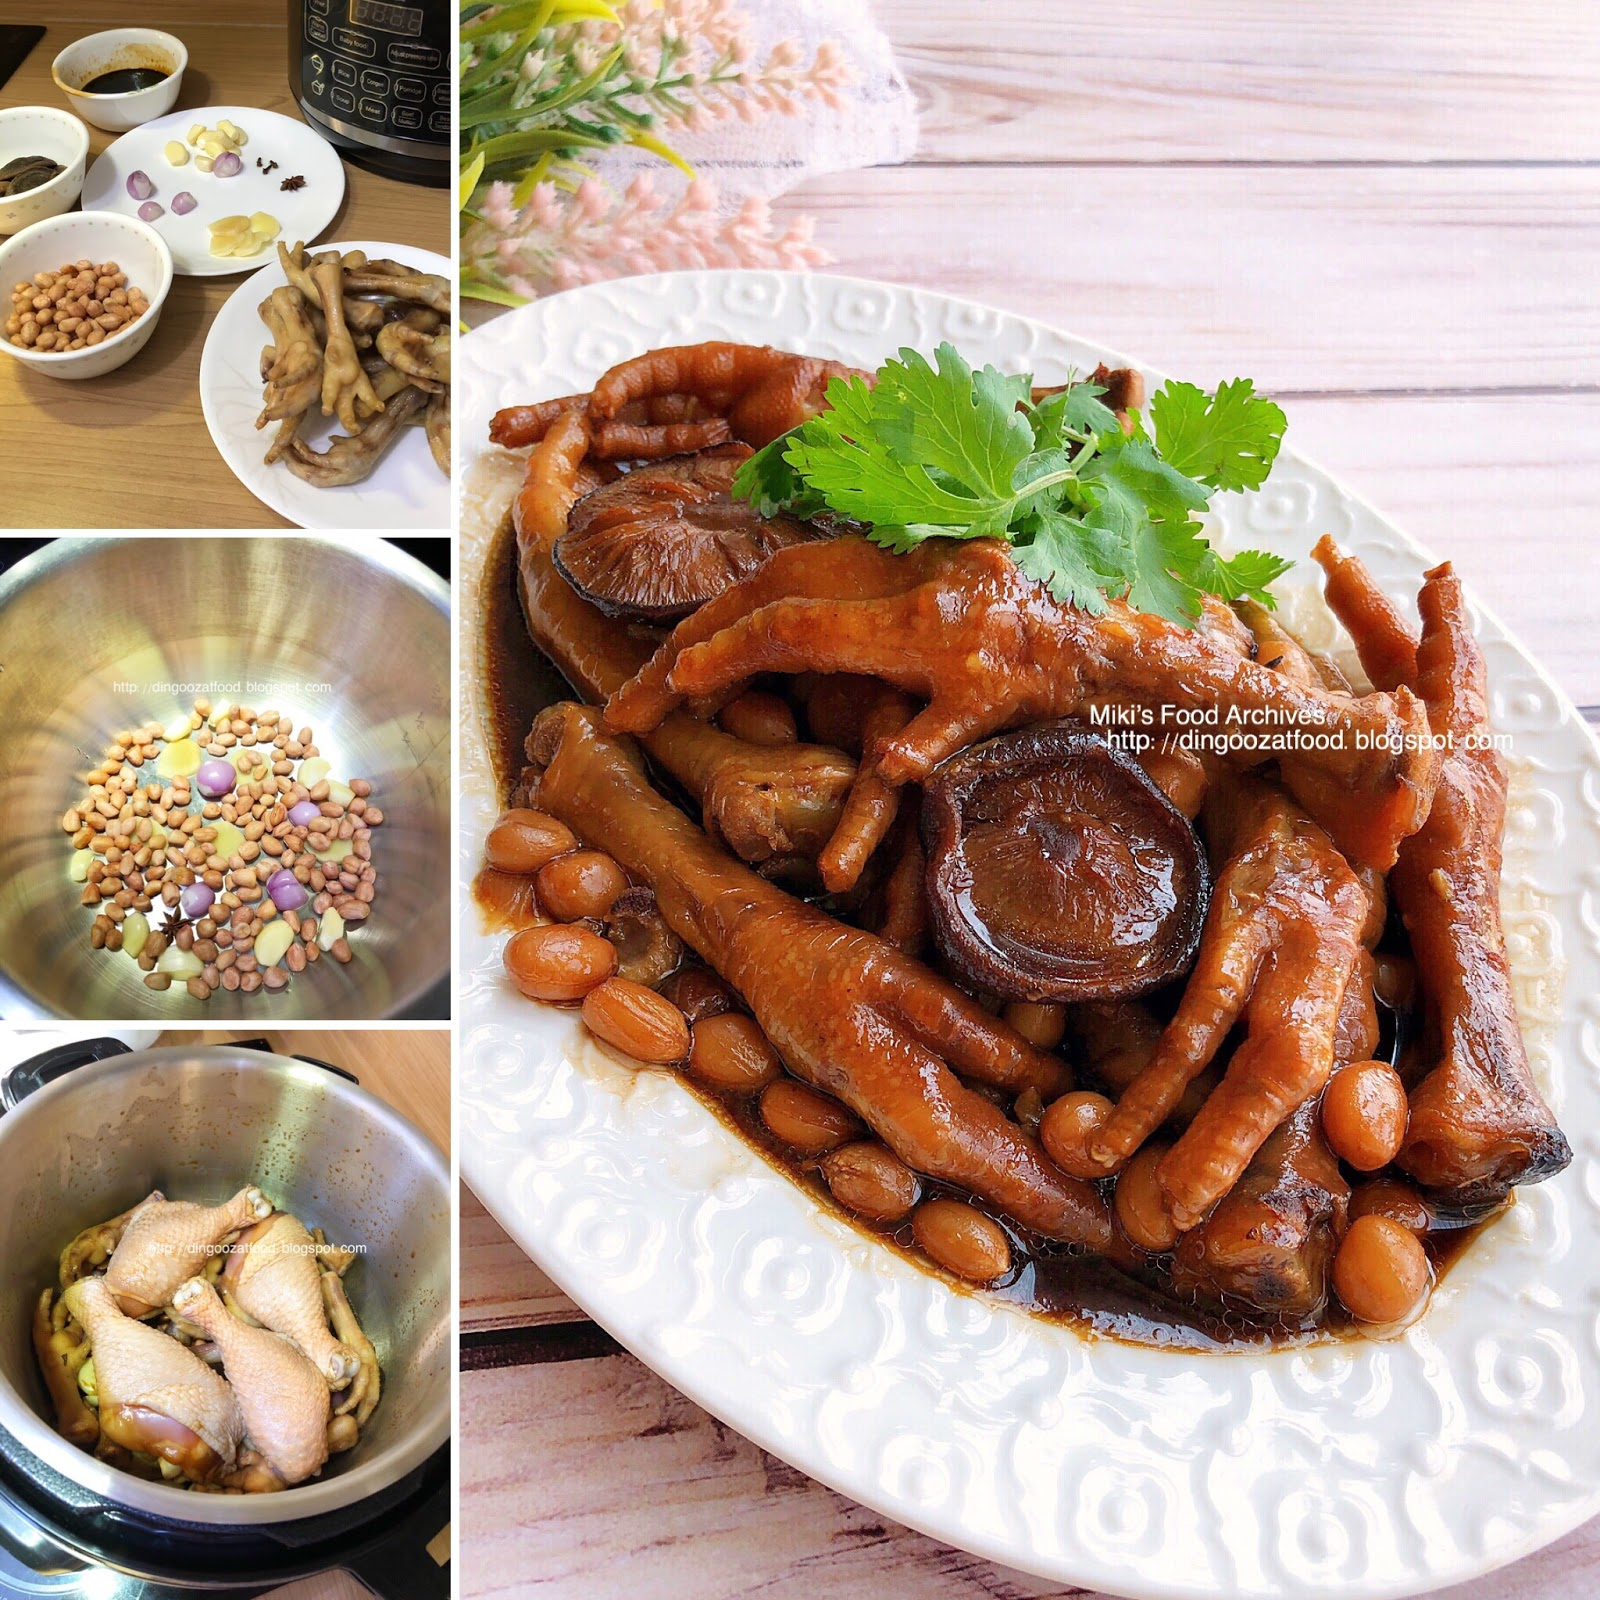 Blogspot Food Blog Miki S Food Archives Braised Chicken Feet With Mushrooms